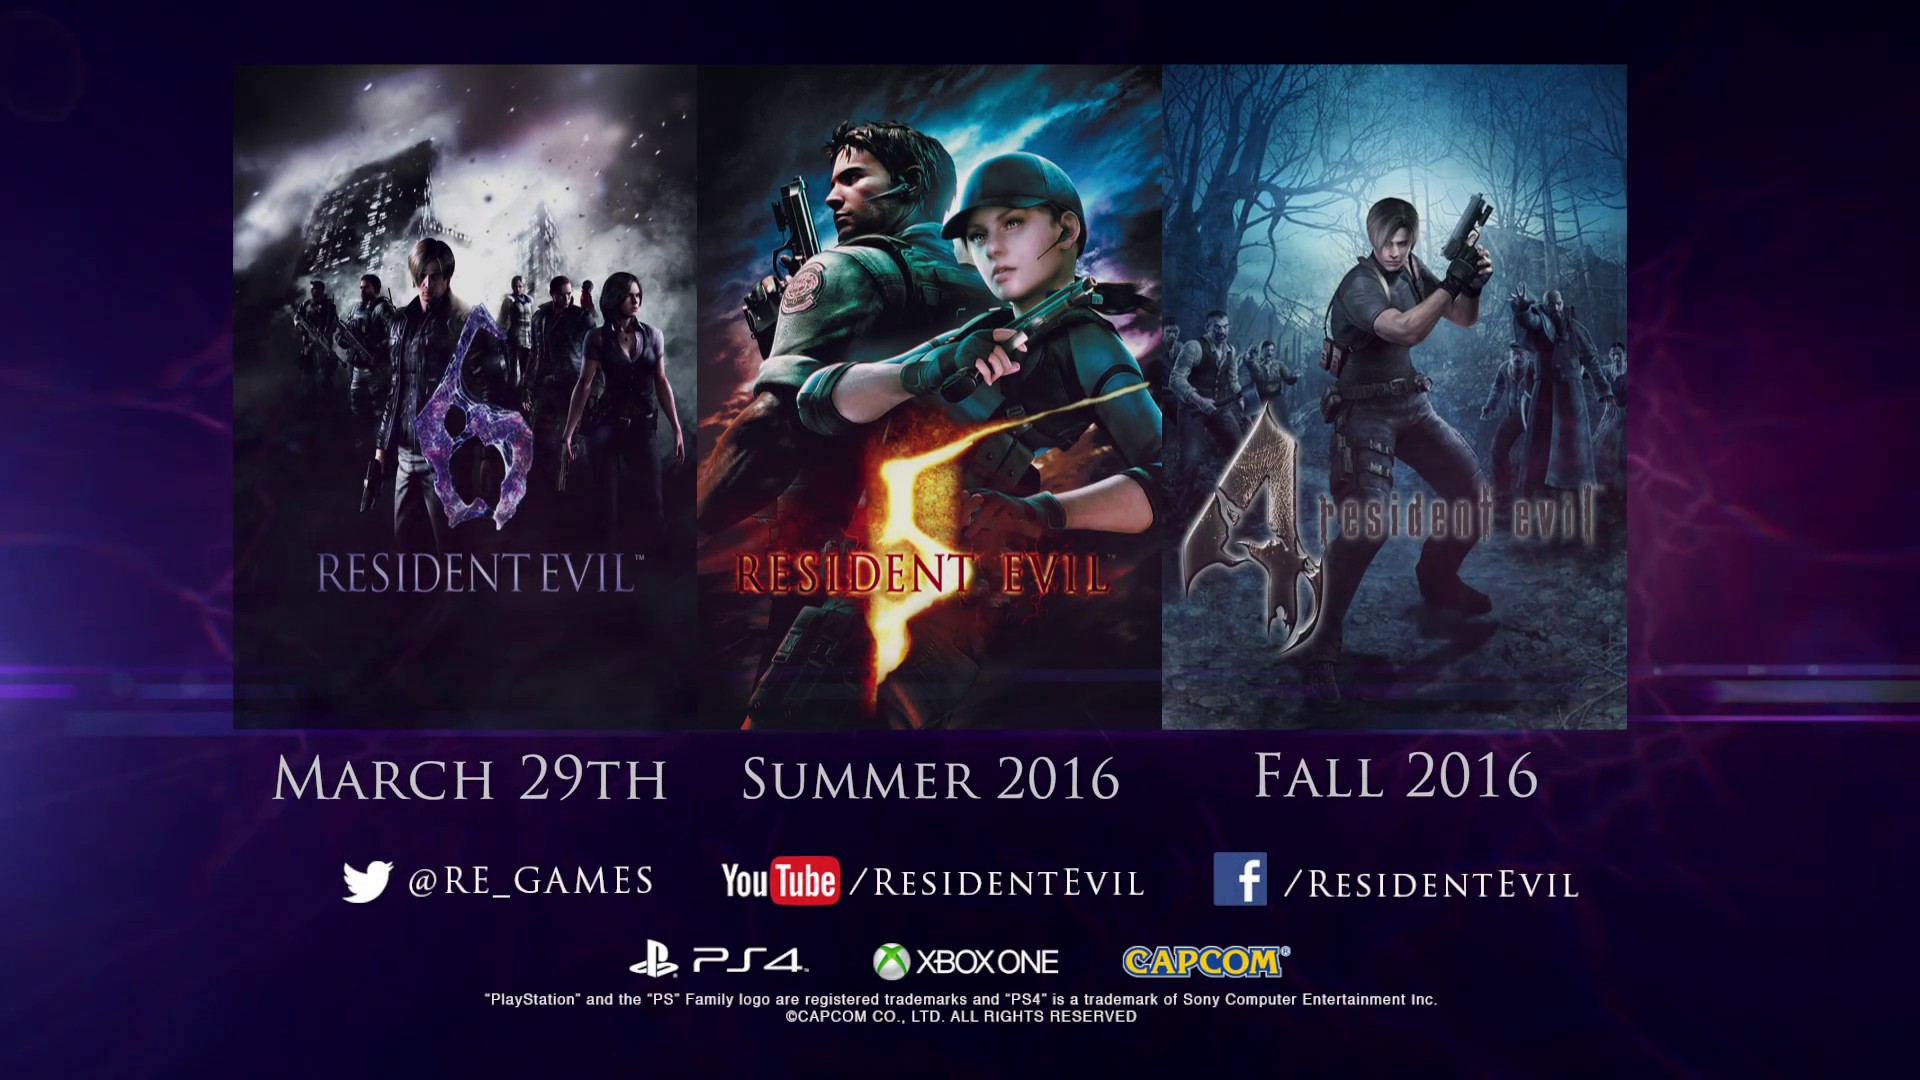 resident evil 4, 5, 6 ps4 xbox one